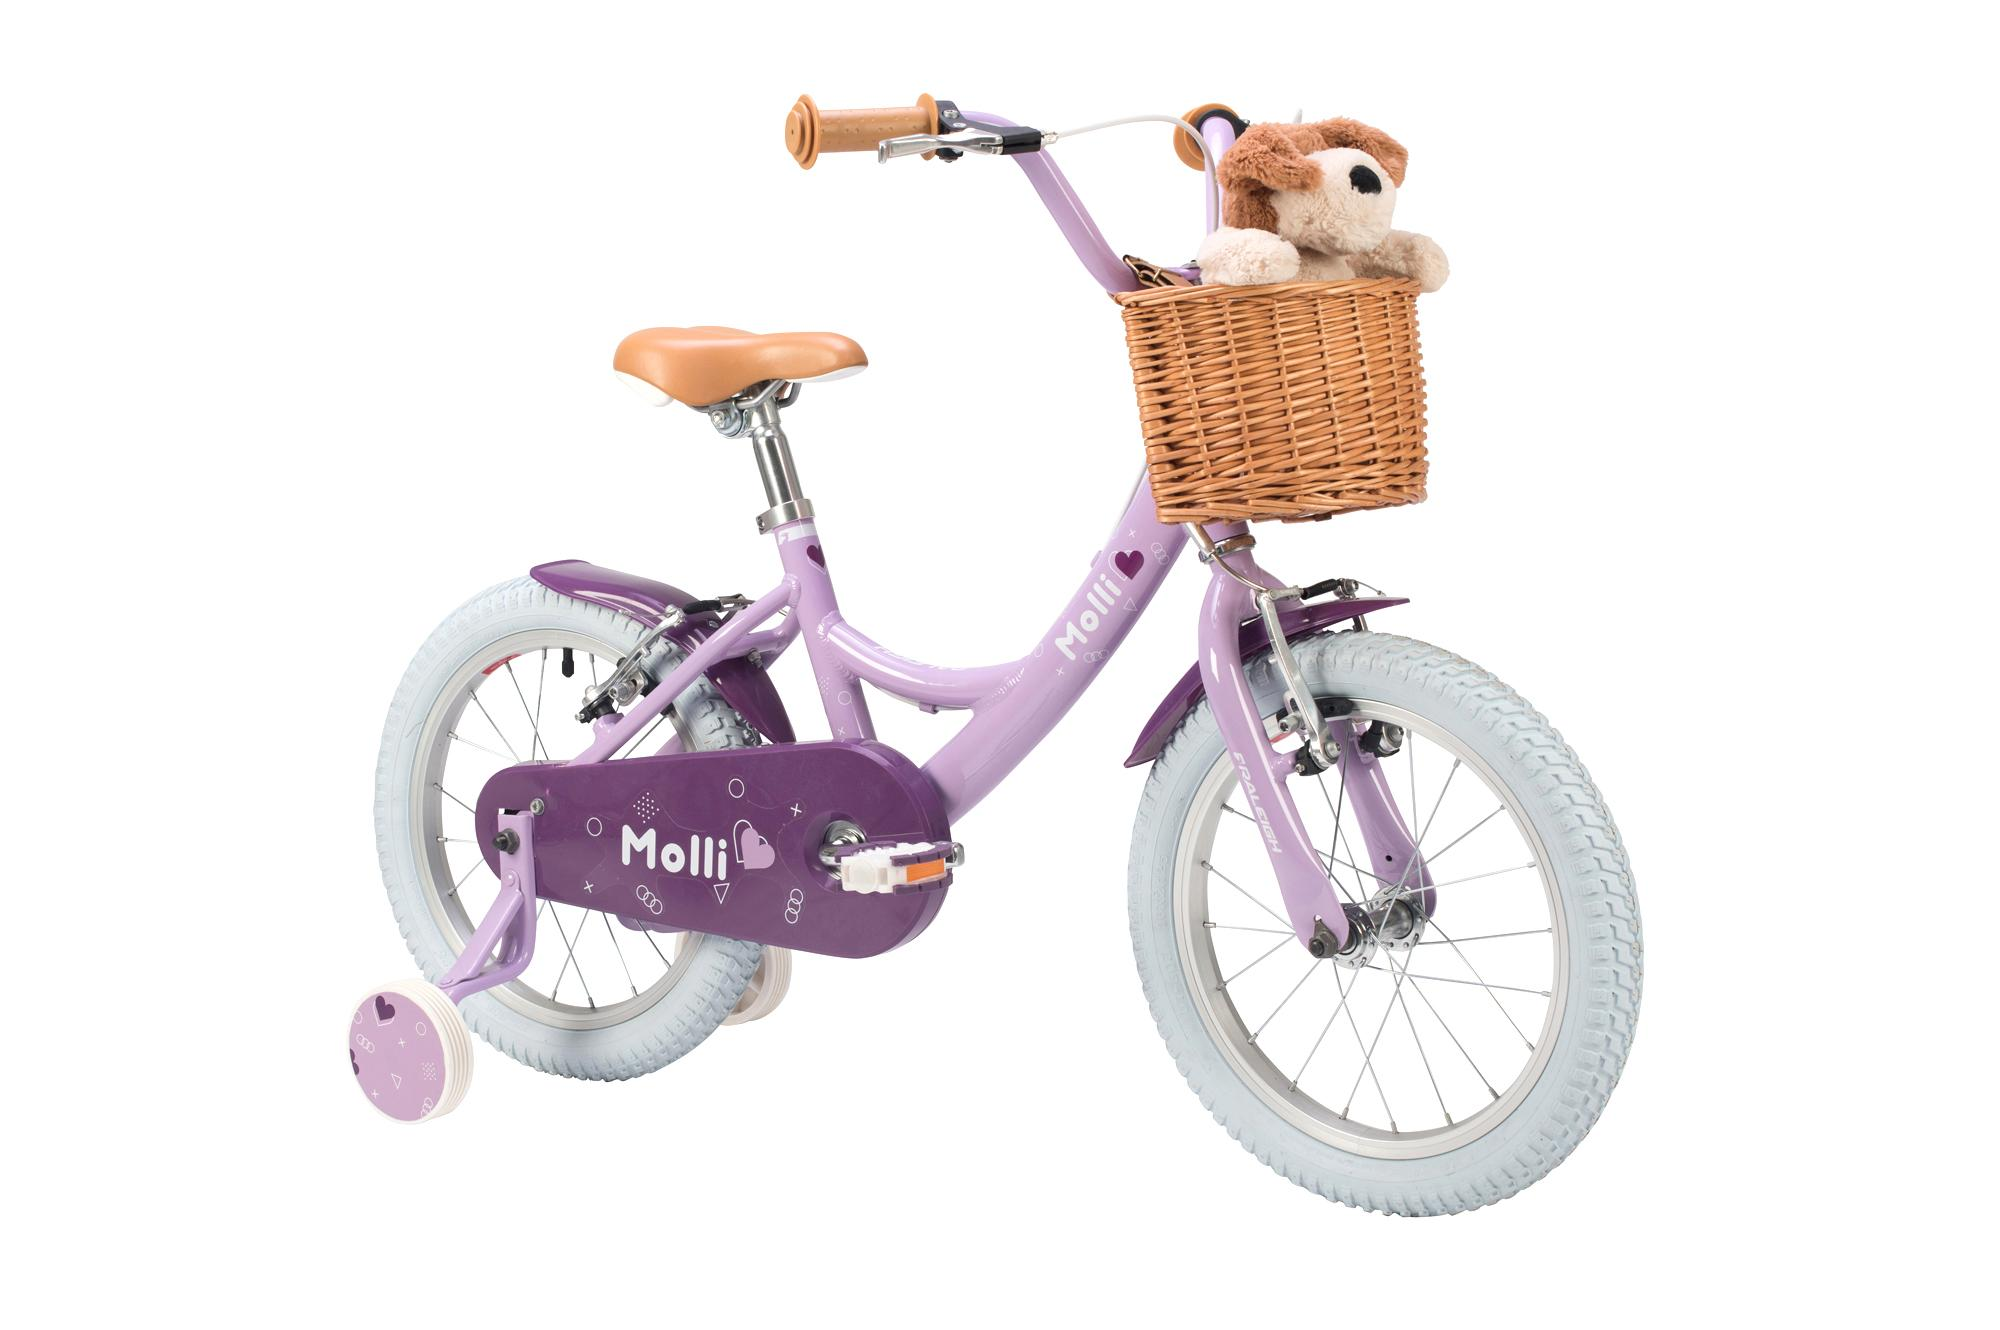 Raleigh Molli 16 inch kids girls bike with stabilisers